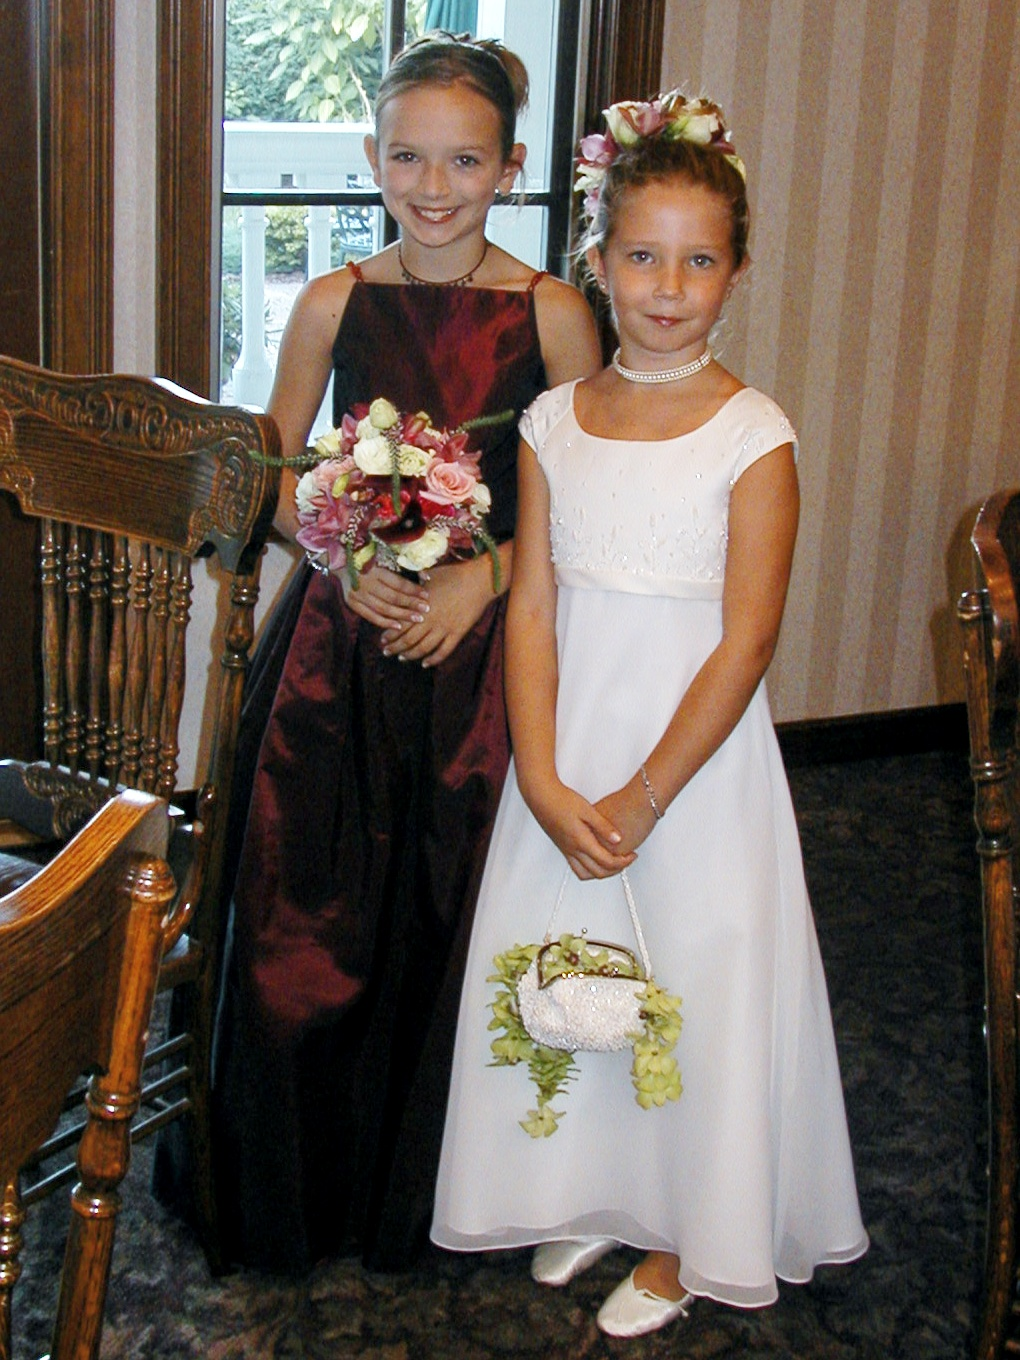 Flower girls with flowers in bouquet and basket from Bouquets & Beyond